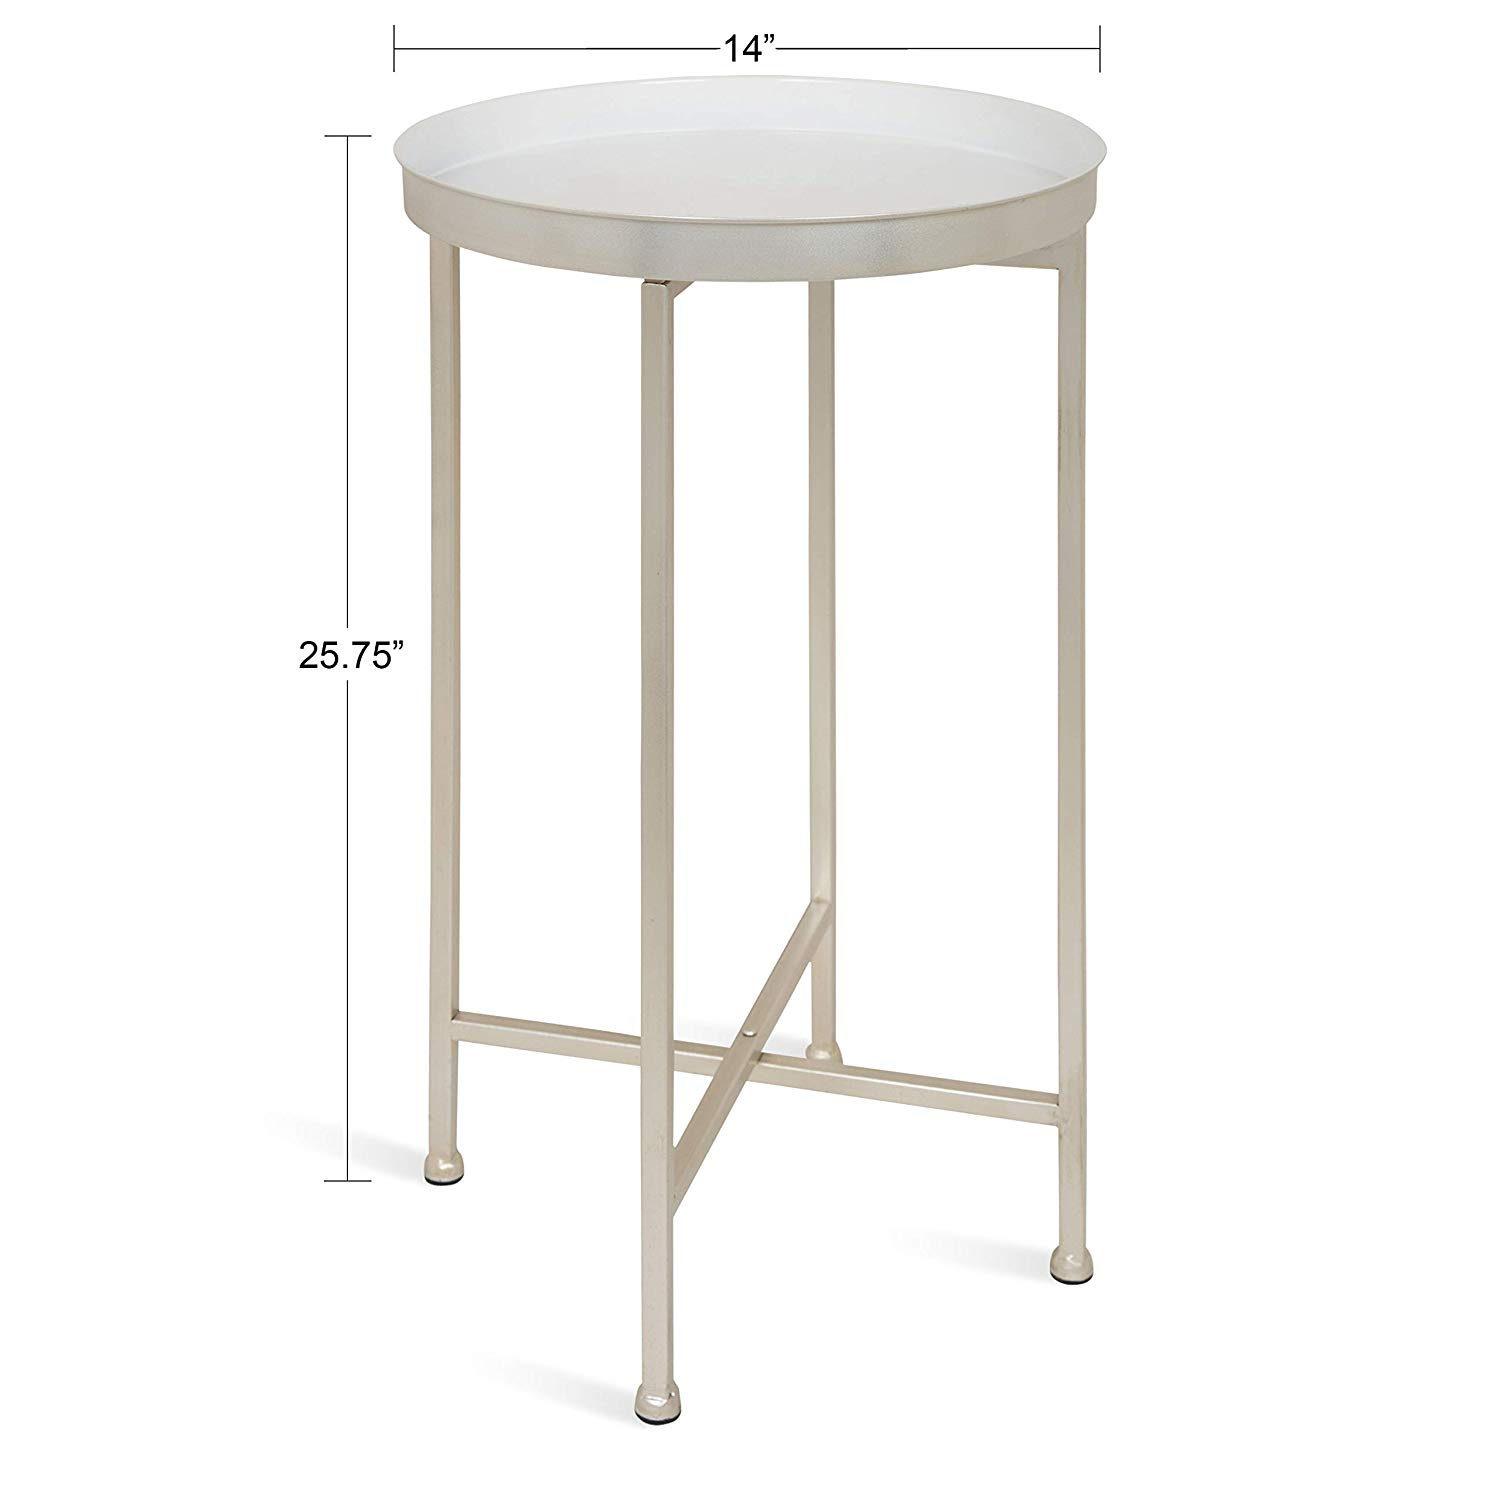 kate and laurel celia round metal foldable tray accent table white with silver base kitchen dining inch sofa console christmas tree storage box west elm hanging lamp furniture